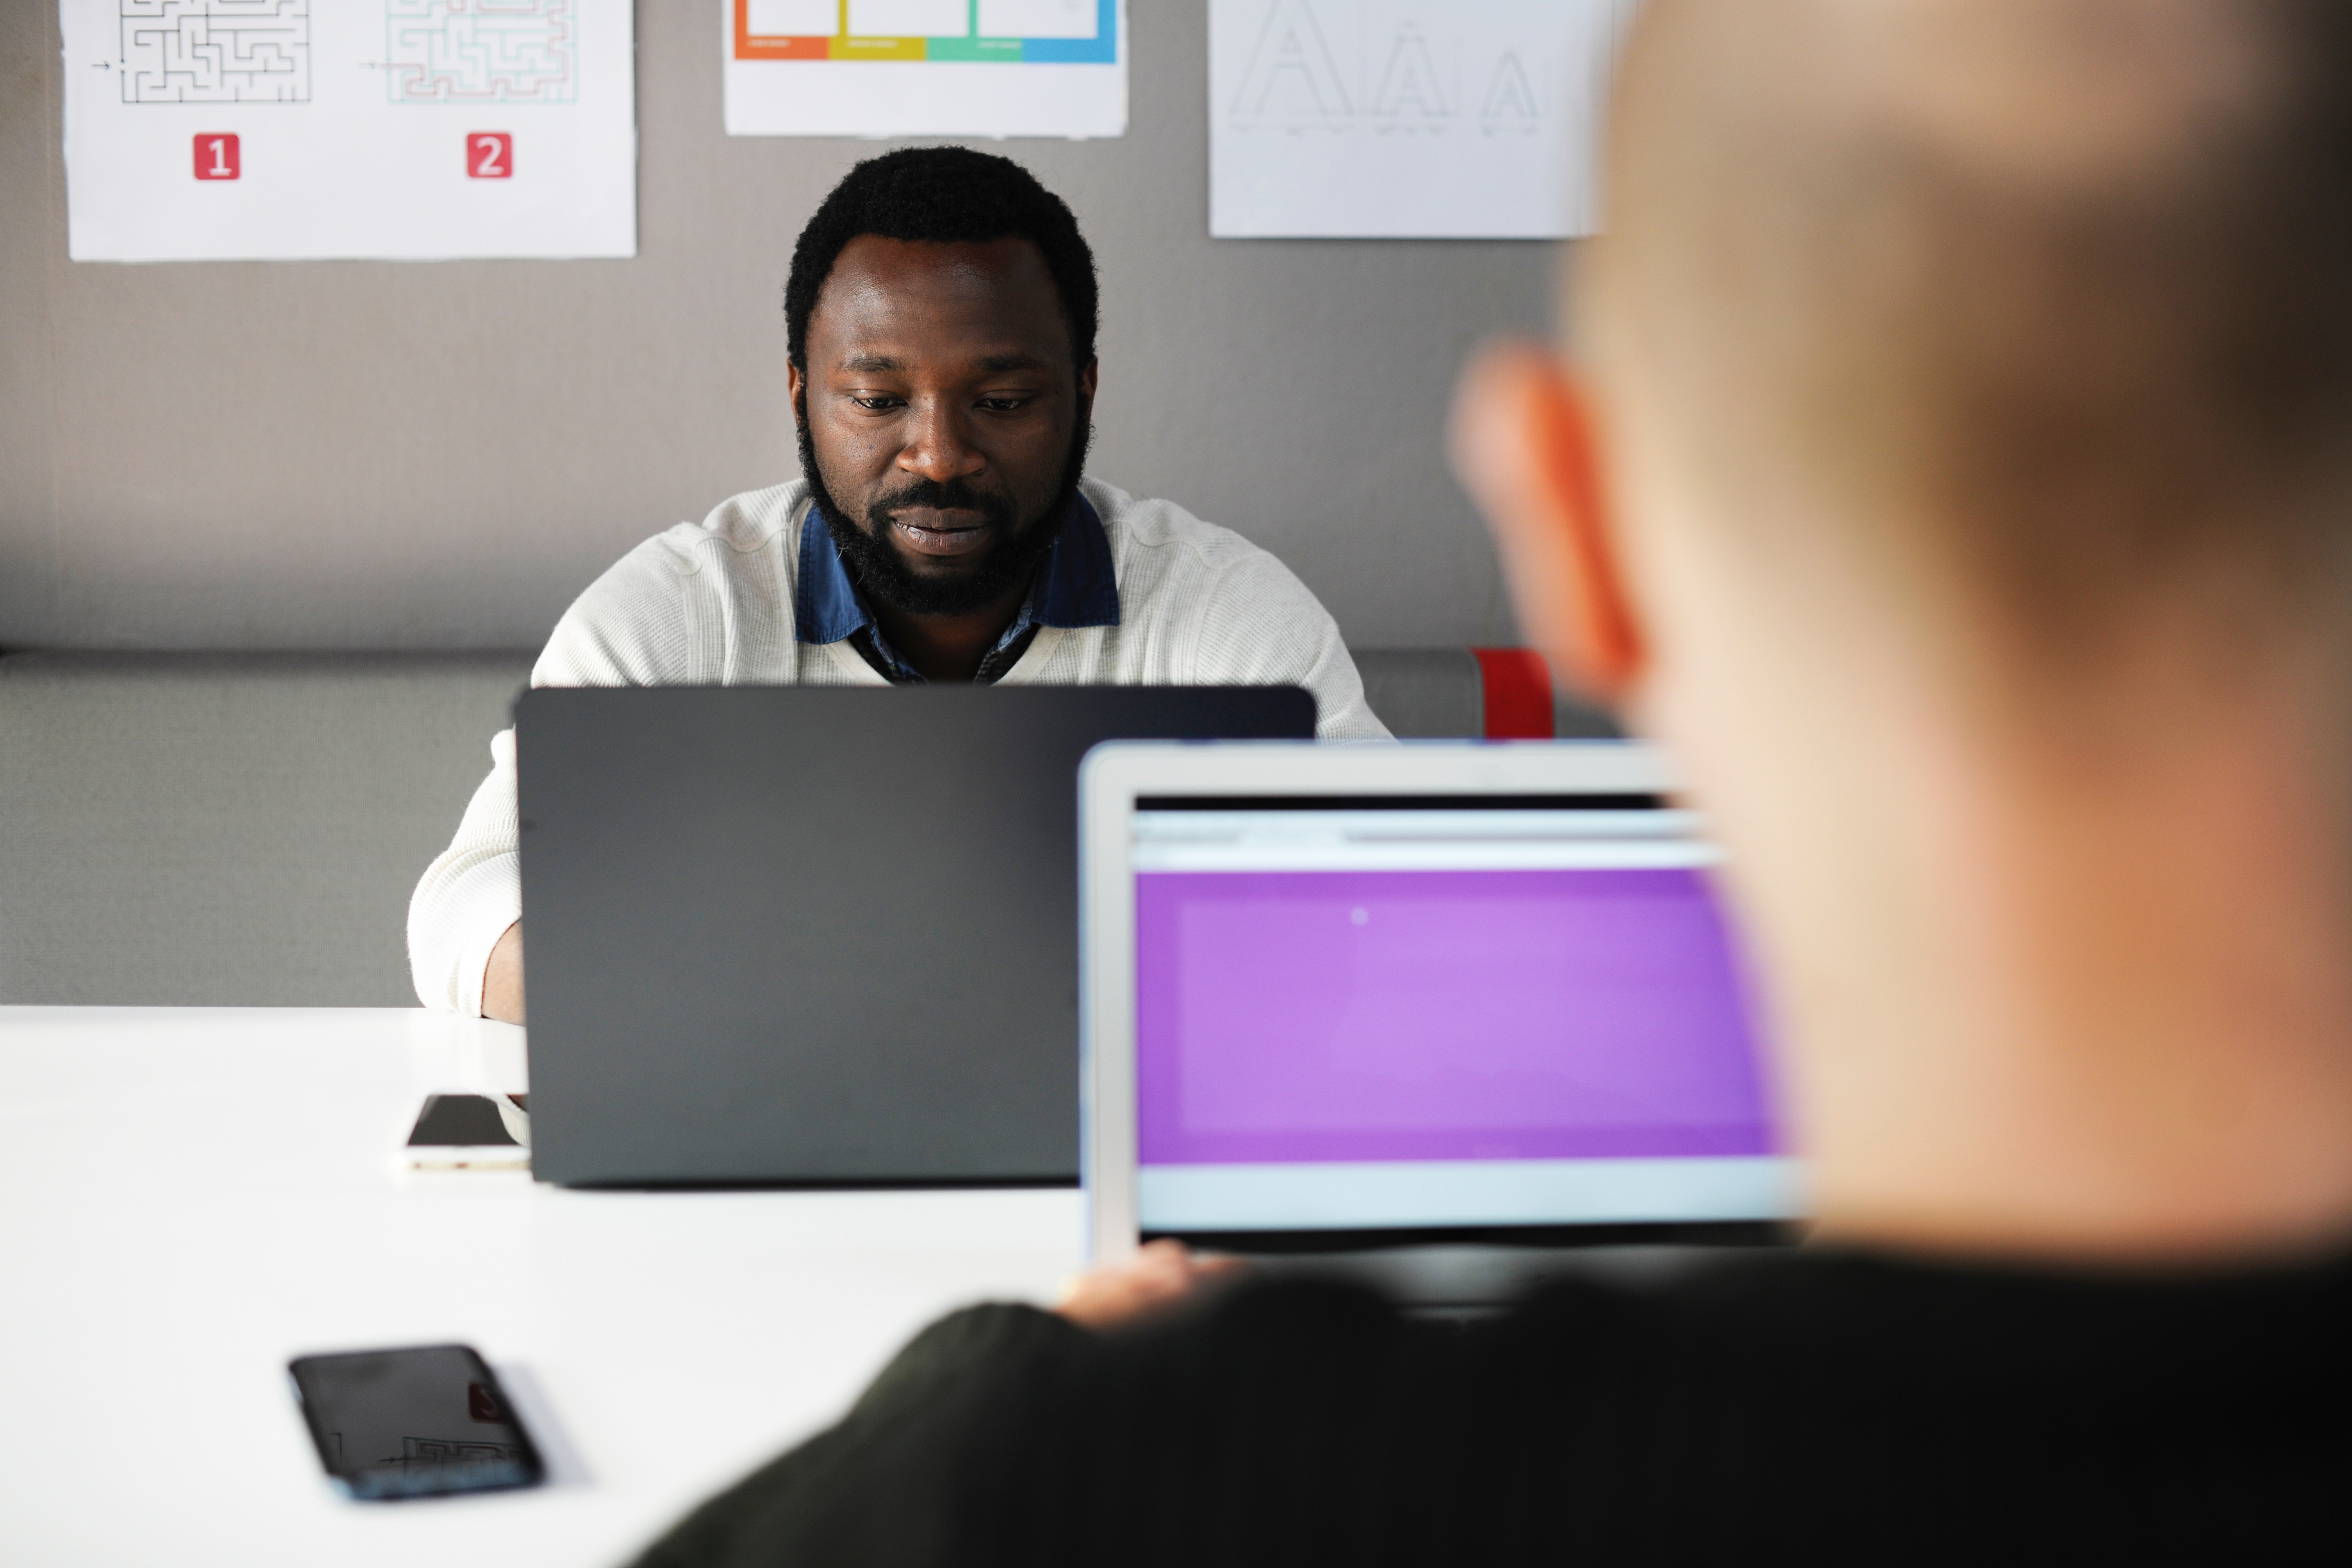 A man's face looking at a computer, with the back of a coworker's head blurred in the foreground.